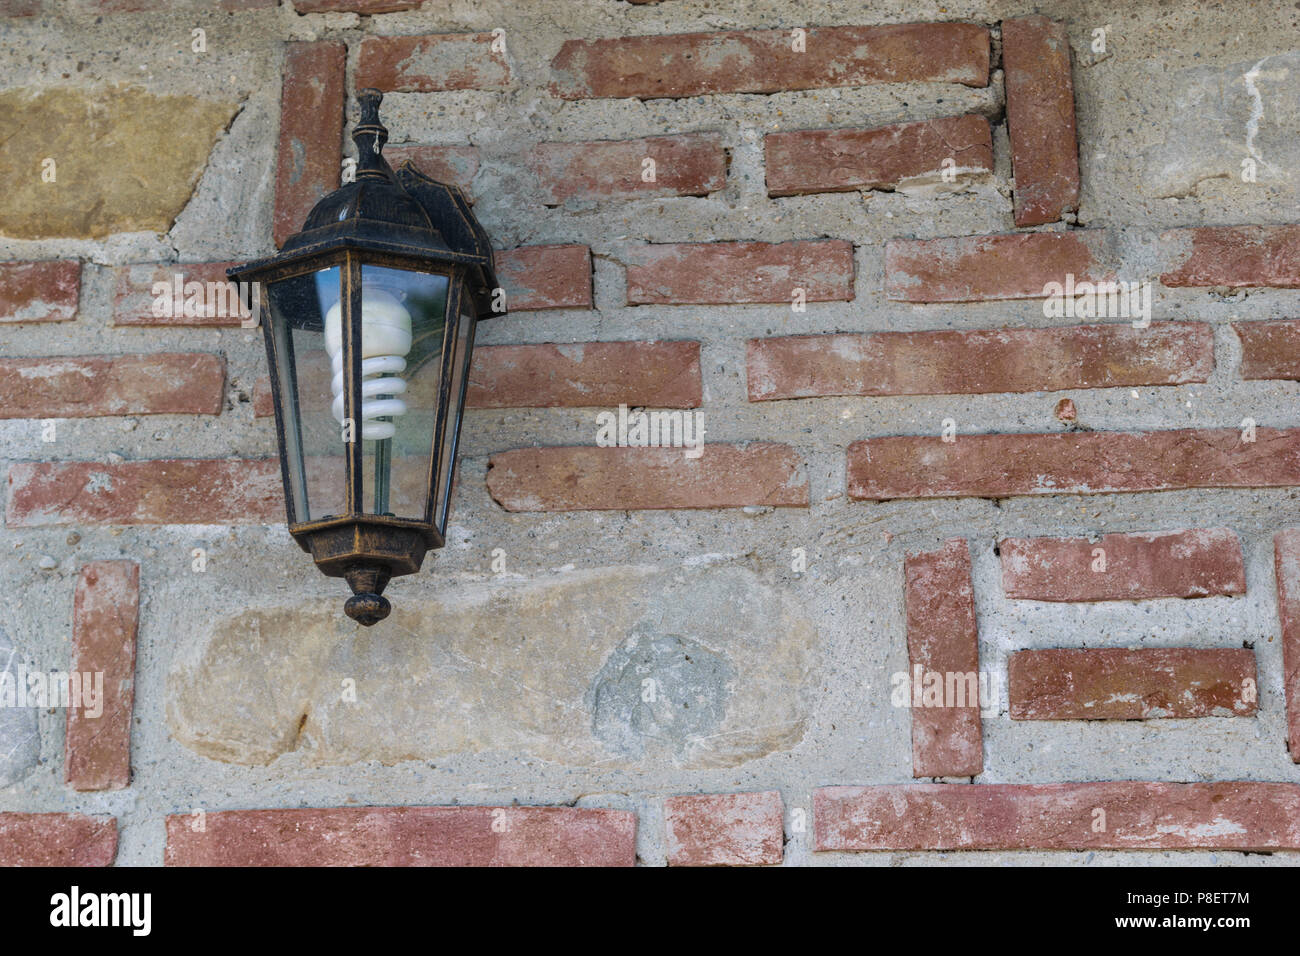 exterior light fixture mounted on brick wall with copy space. Energy saving light bulb installed. - Stock Image